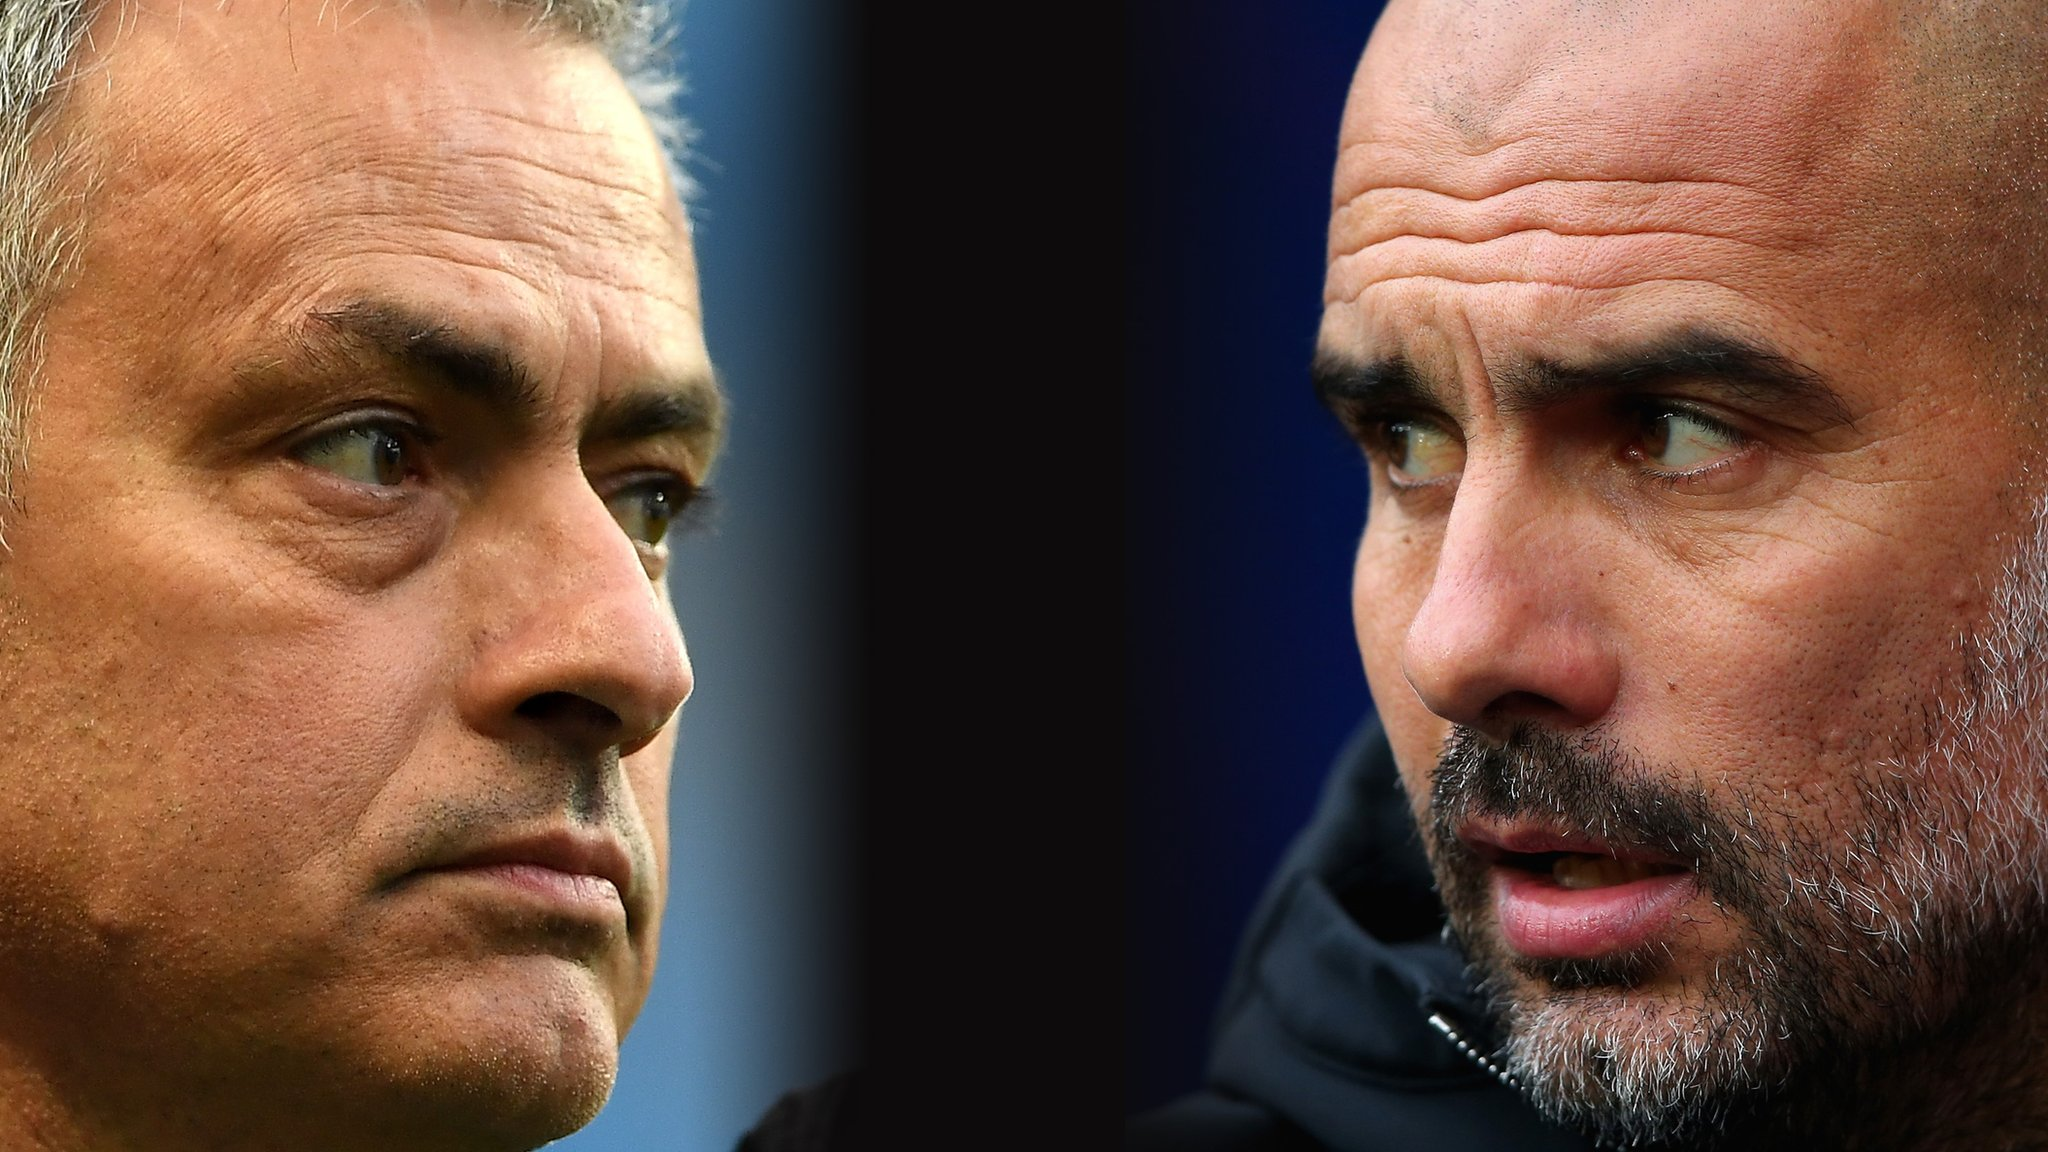 'You can buy top players, you cannot buy class' - Mourinho on Man City documentary